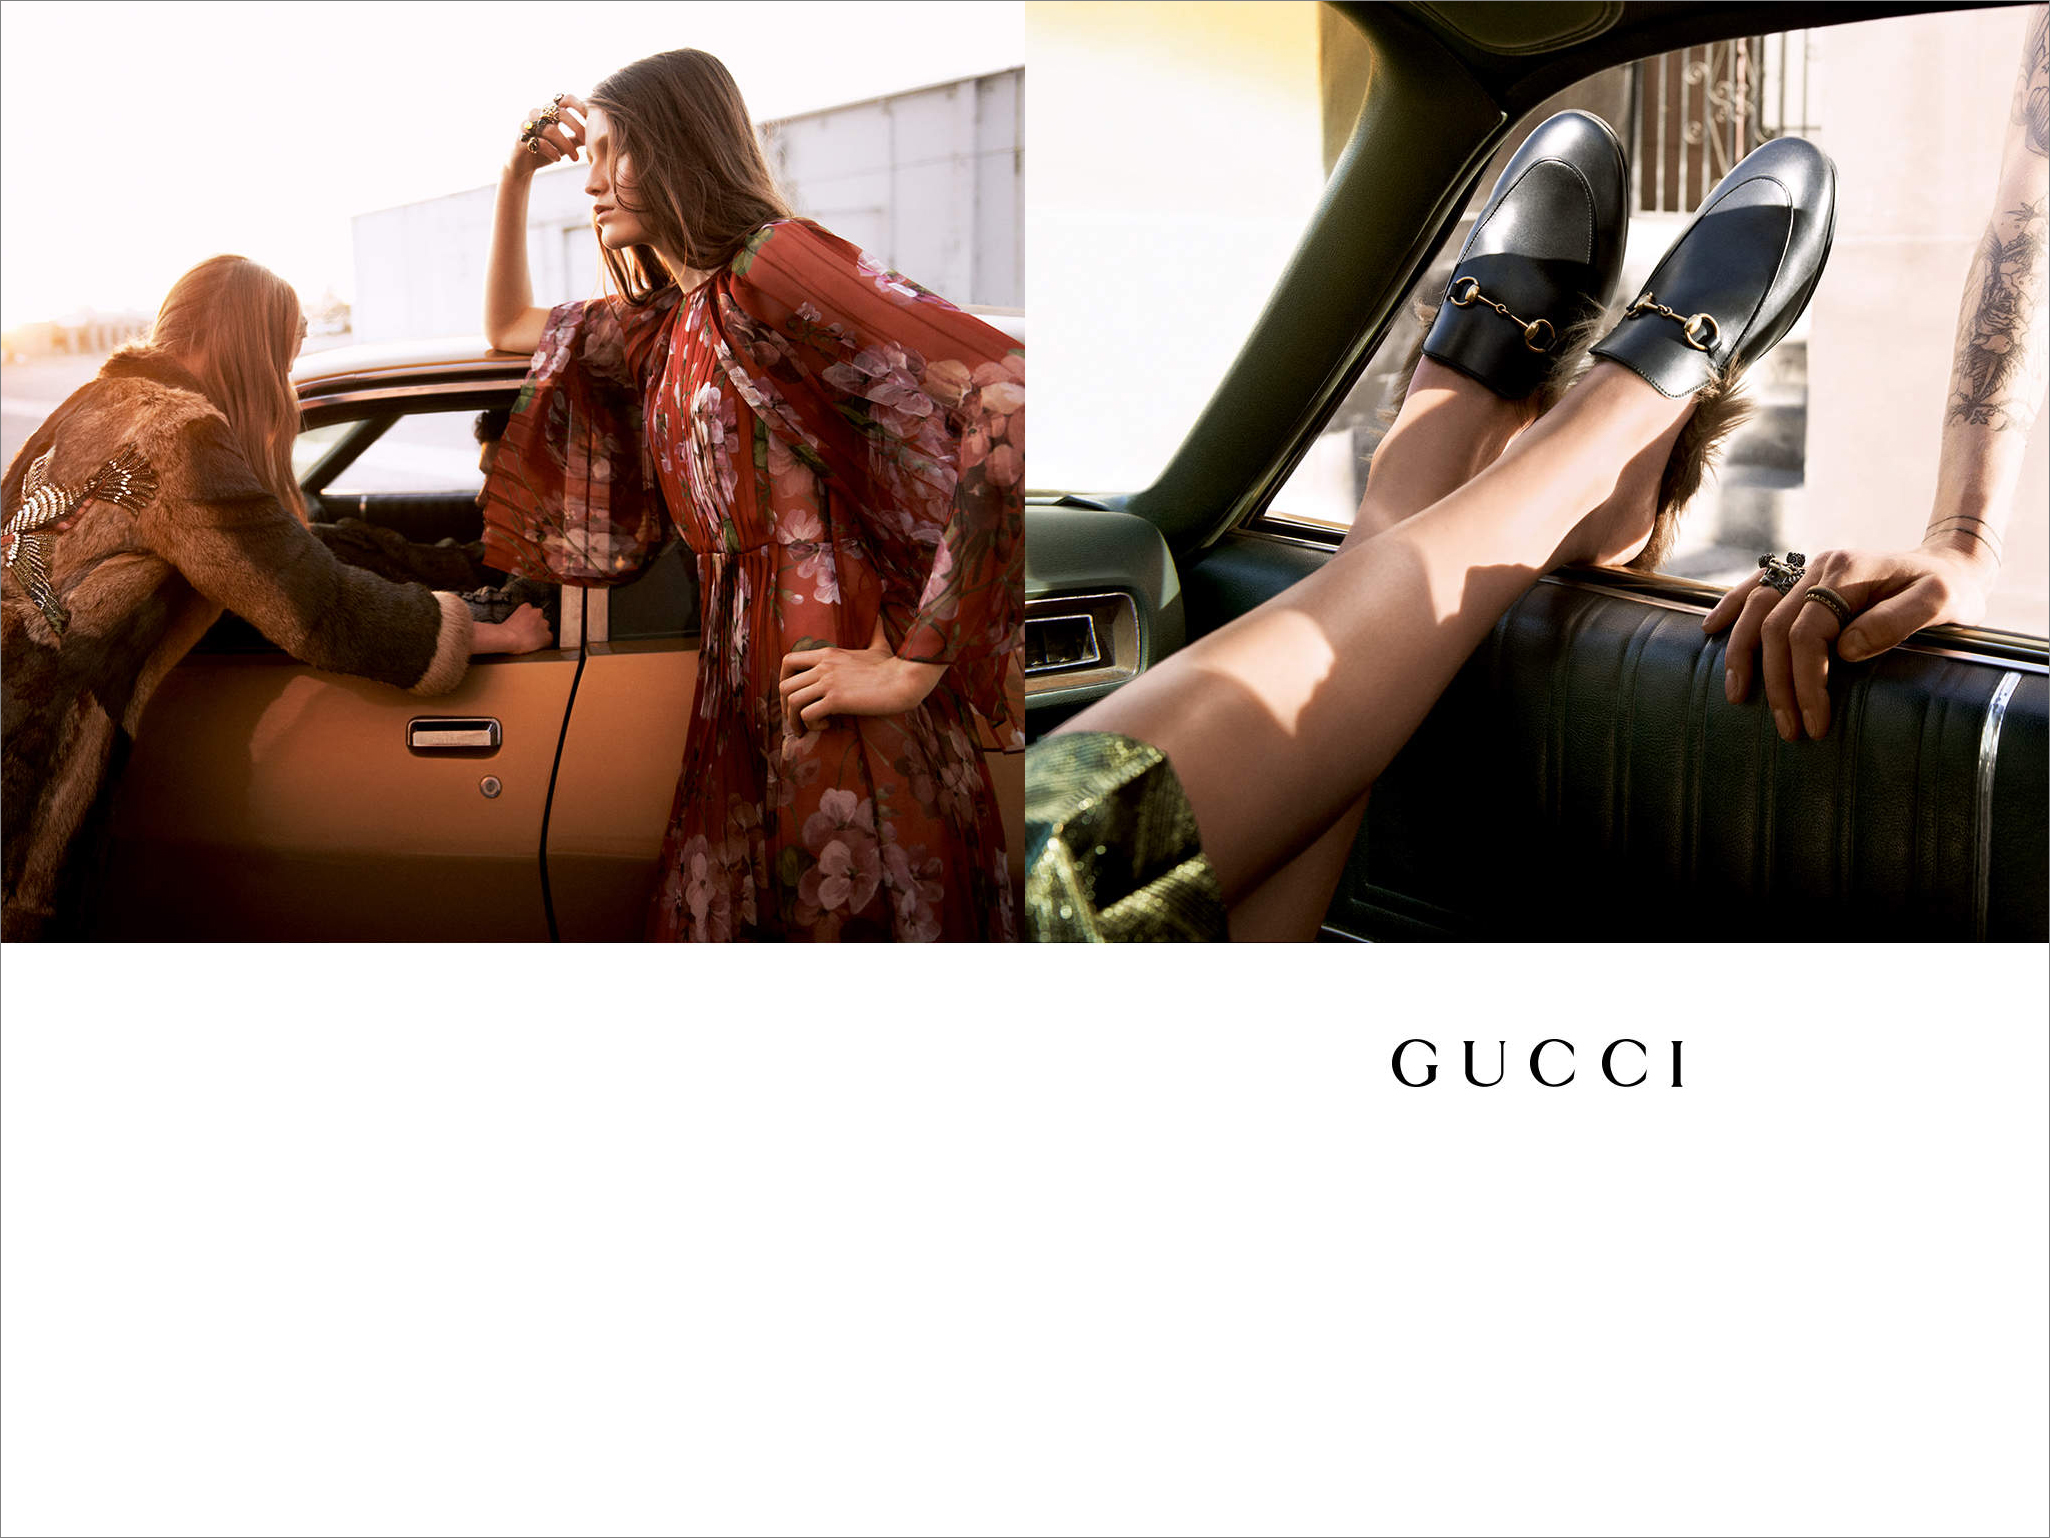 gucci-ad-advertisement-campaign-fall-2015-the-impression-04[1]